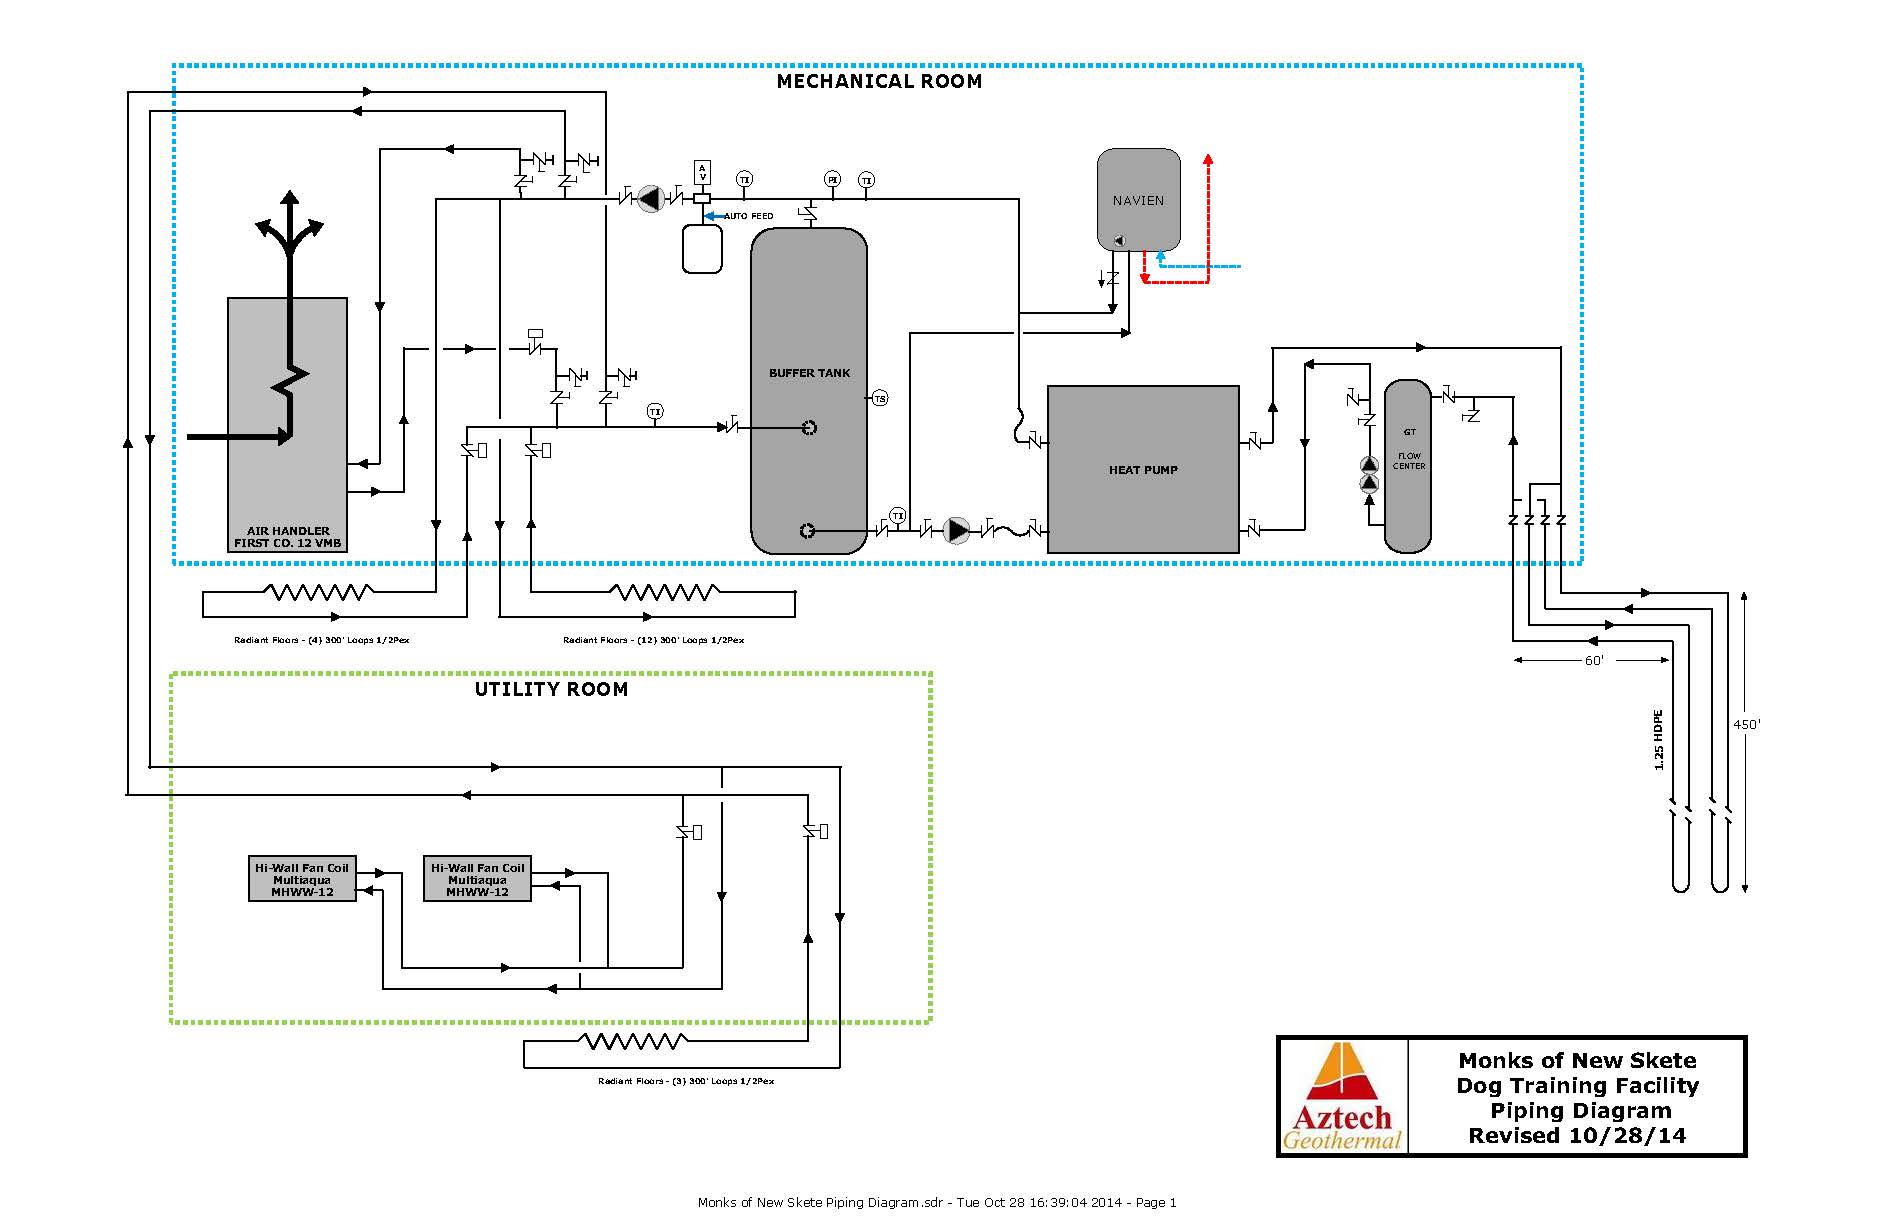 Geothermal Piping Diagram - Wiring Diagrams Description